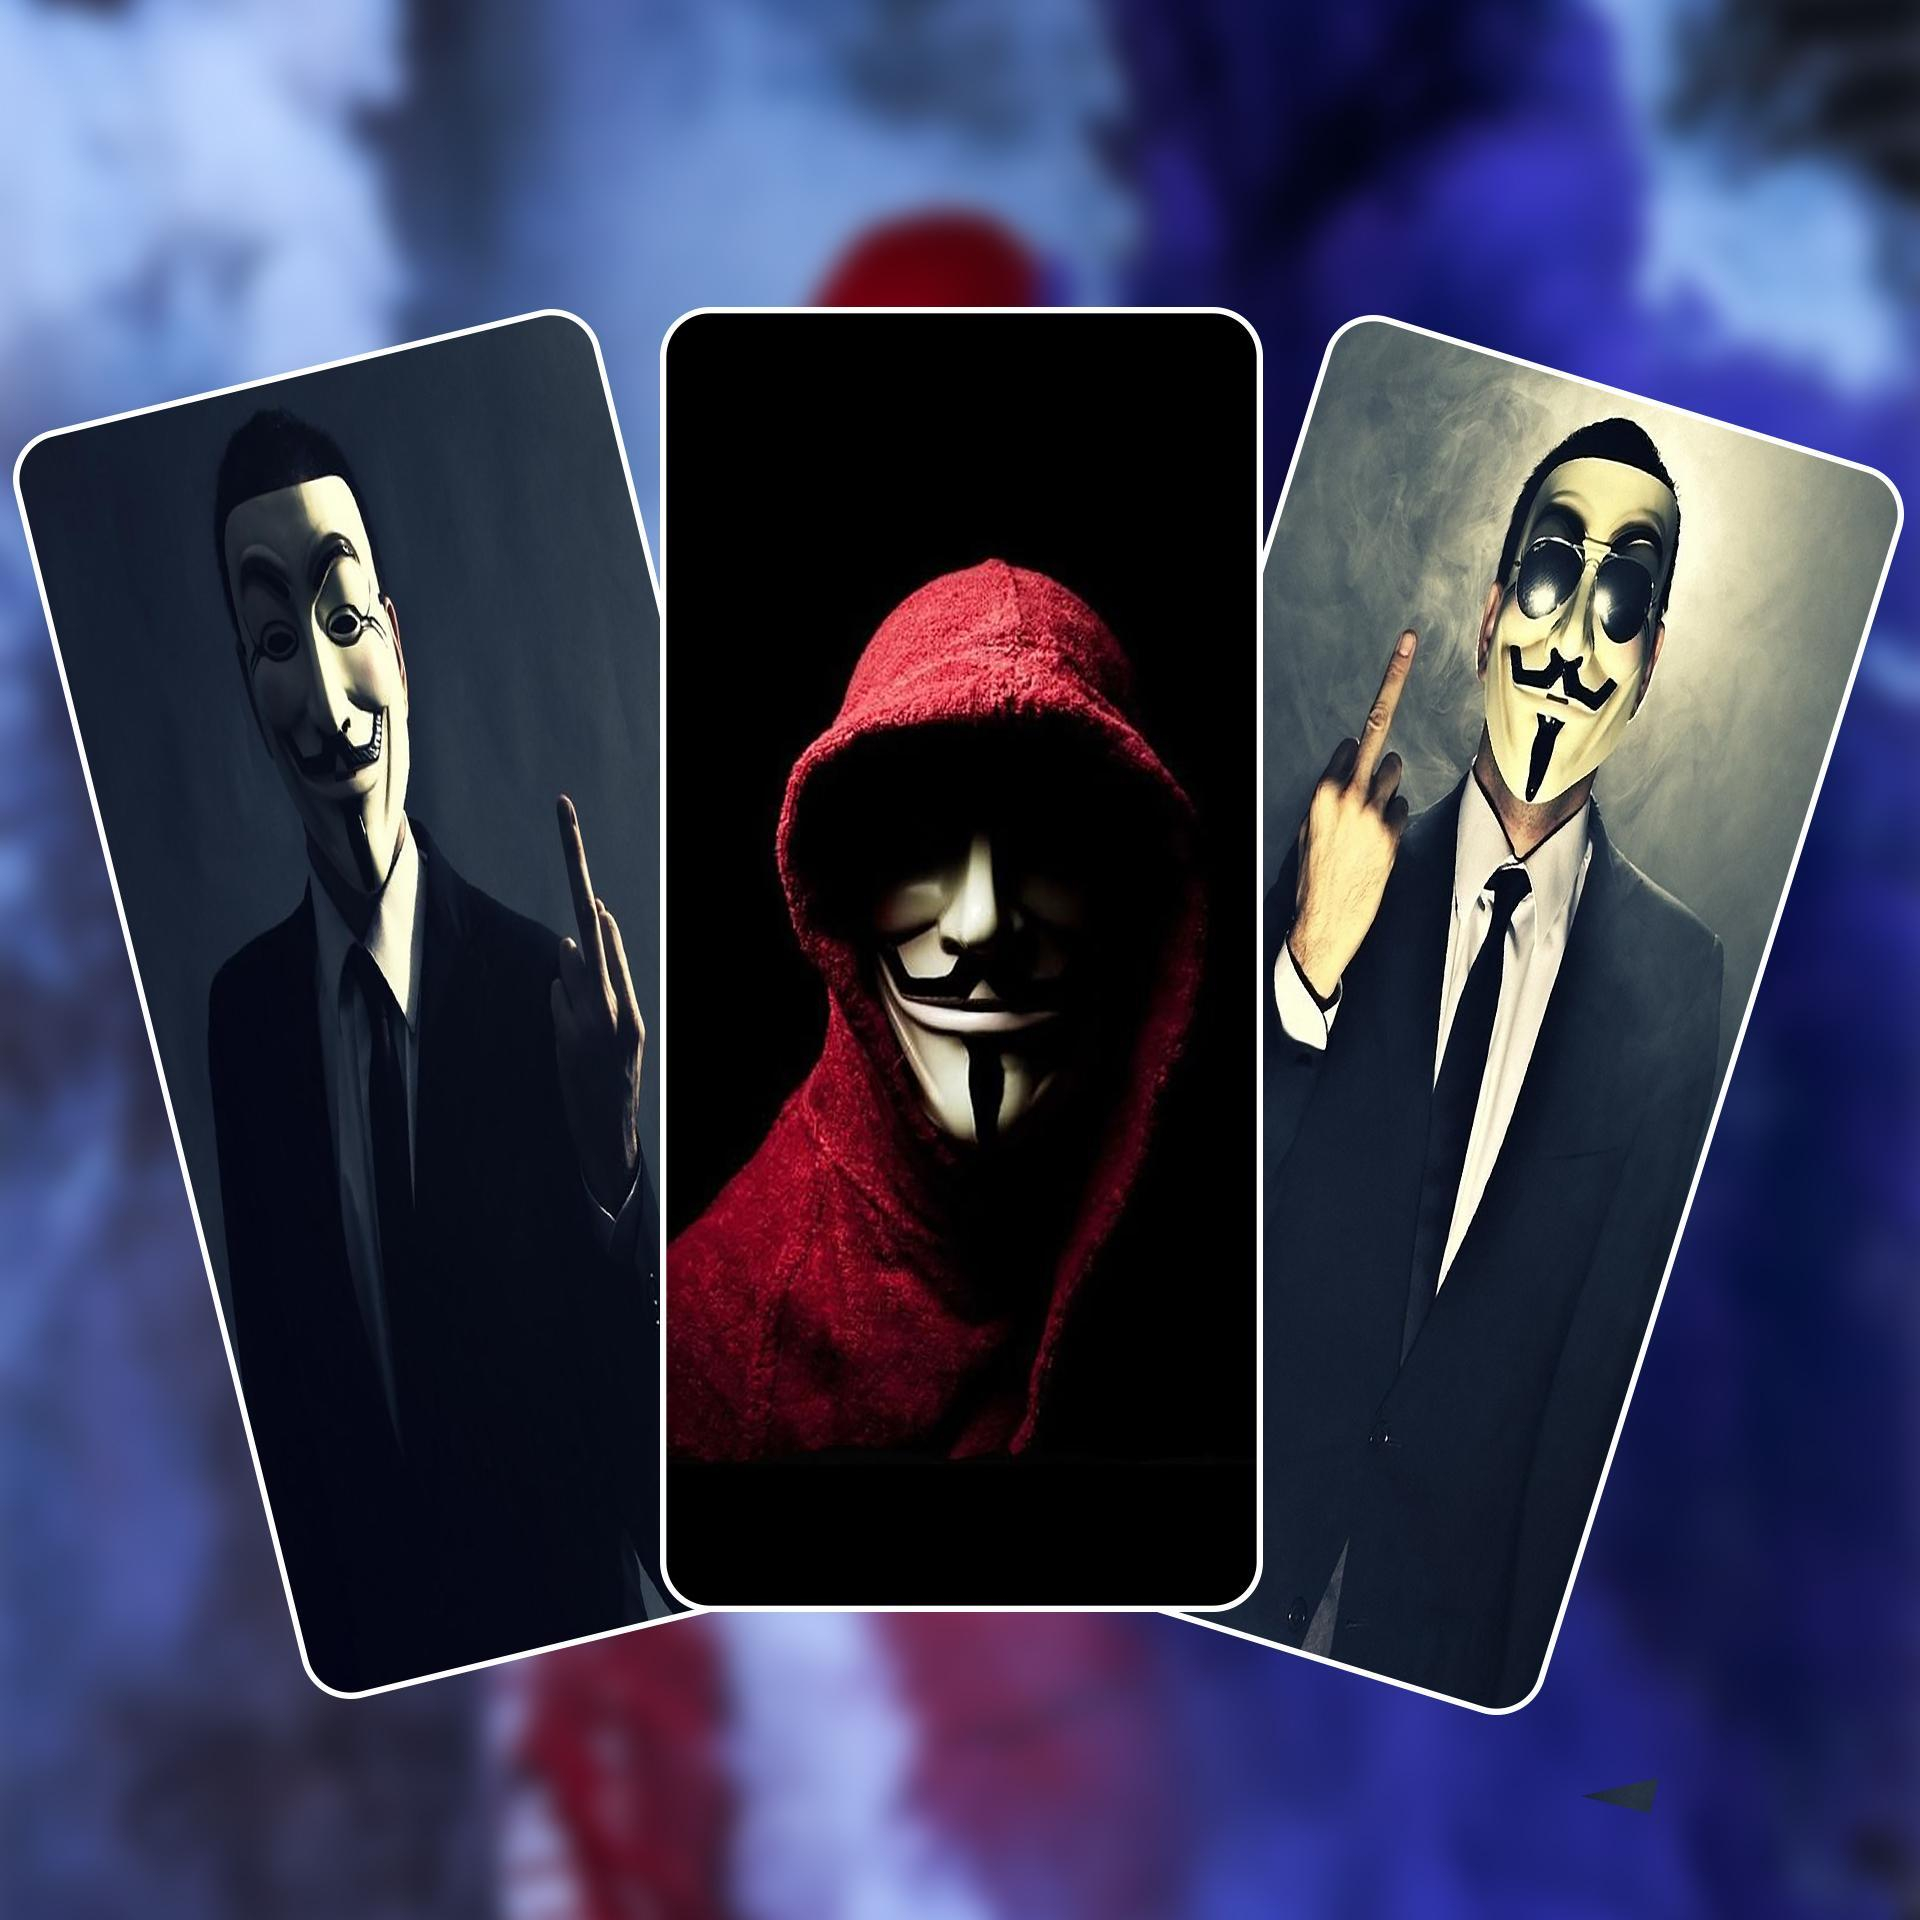 wJRmRo anonymous wallpaper 4k 2019 for android apk